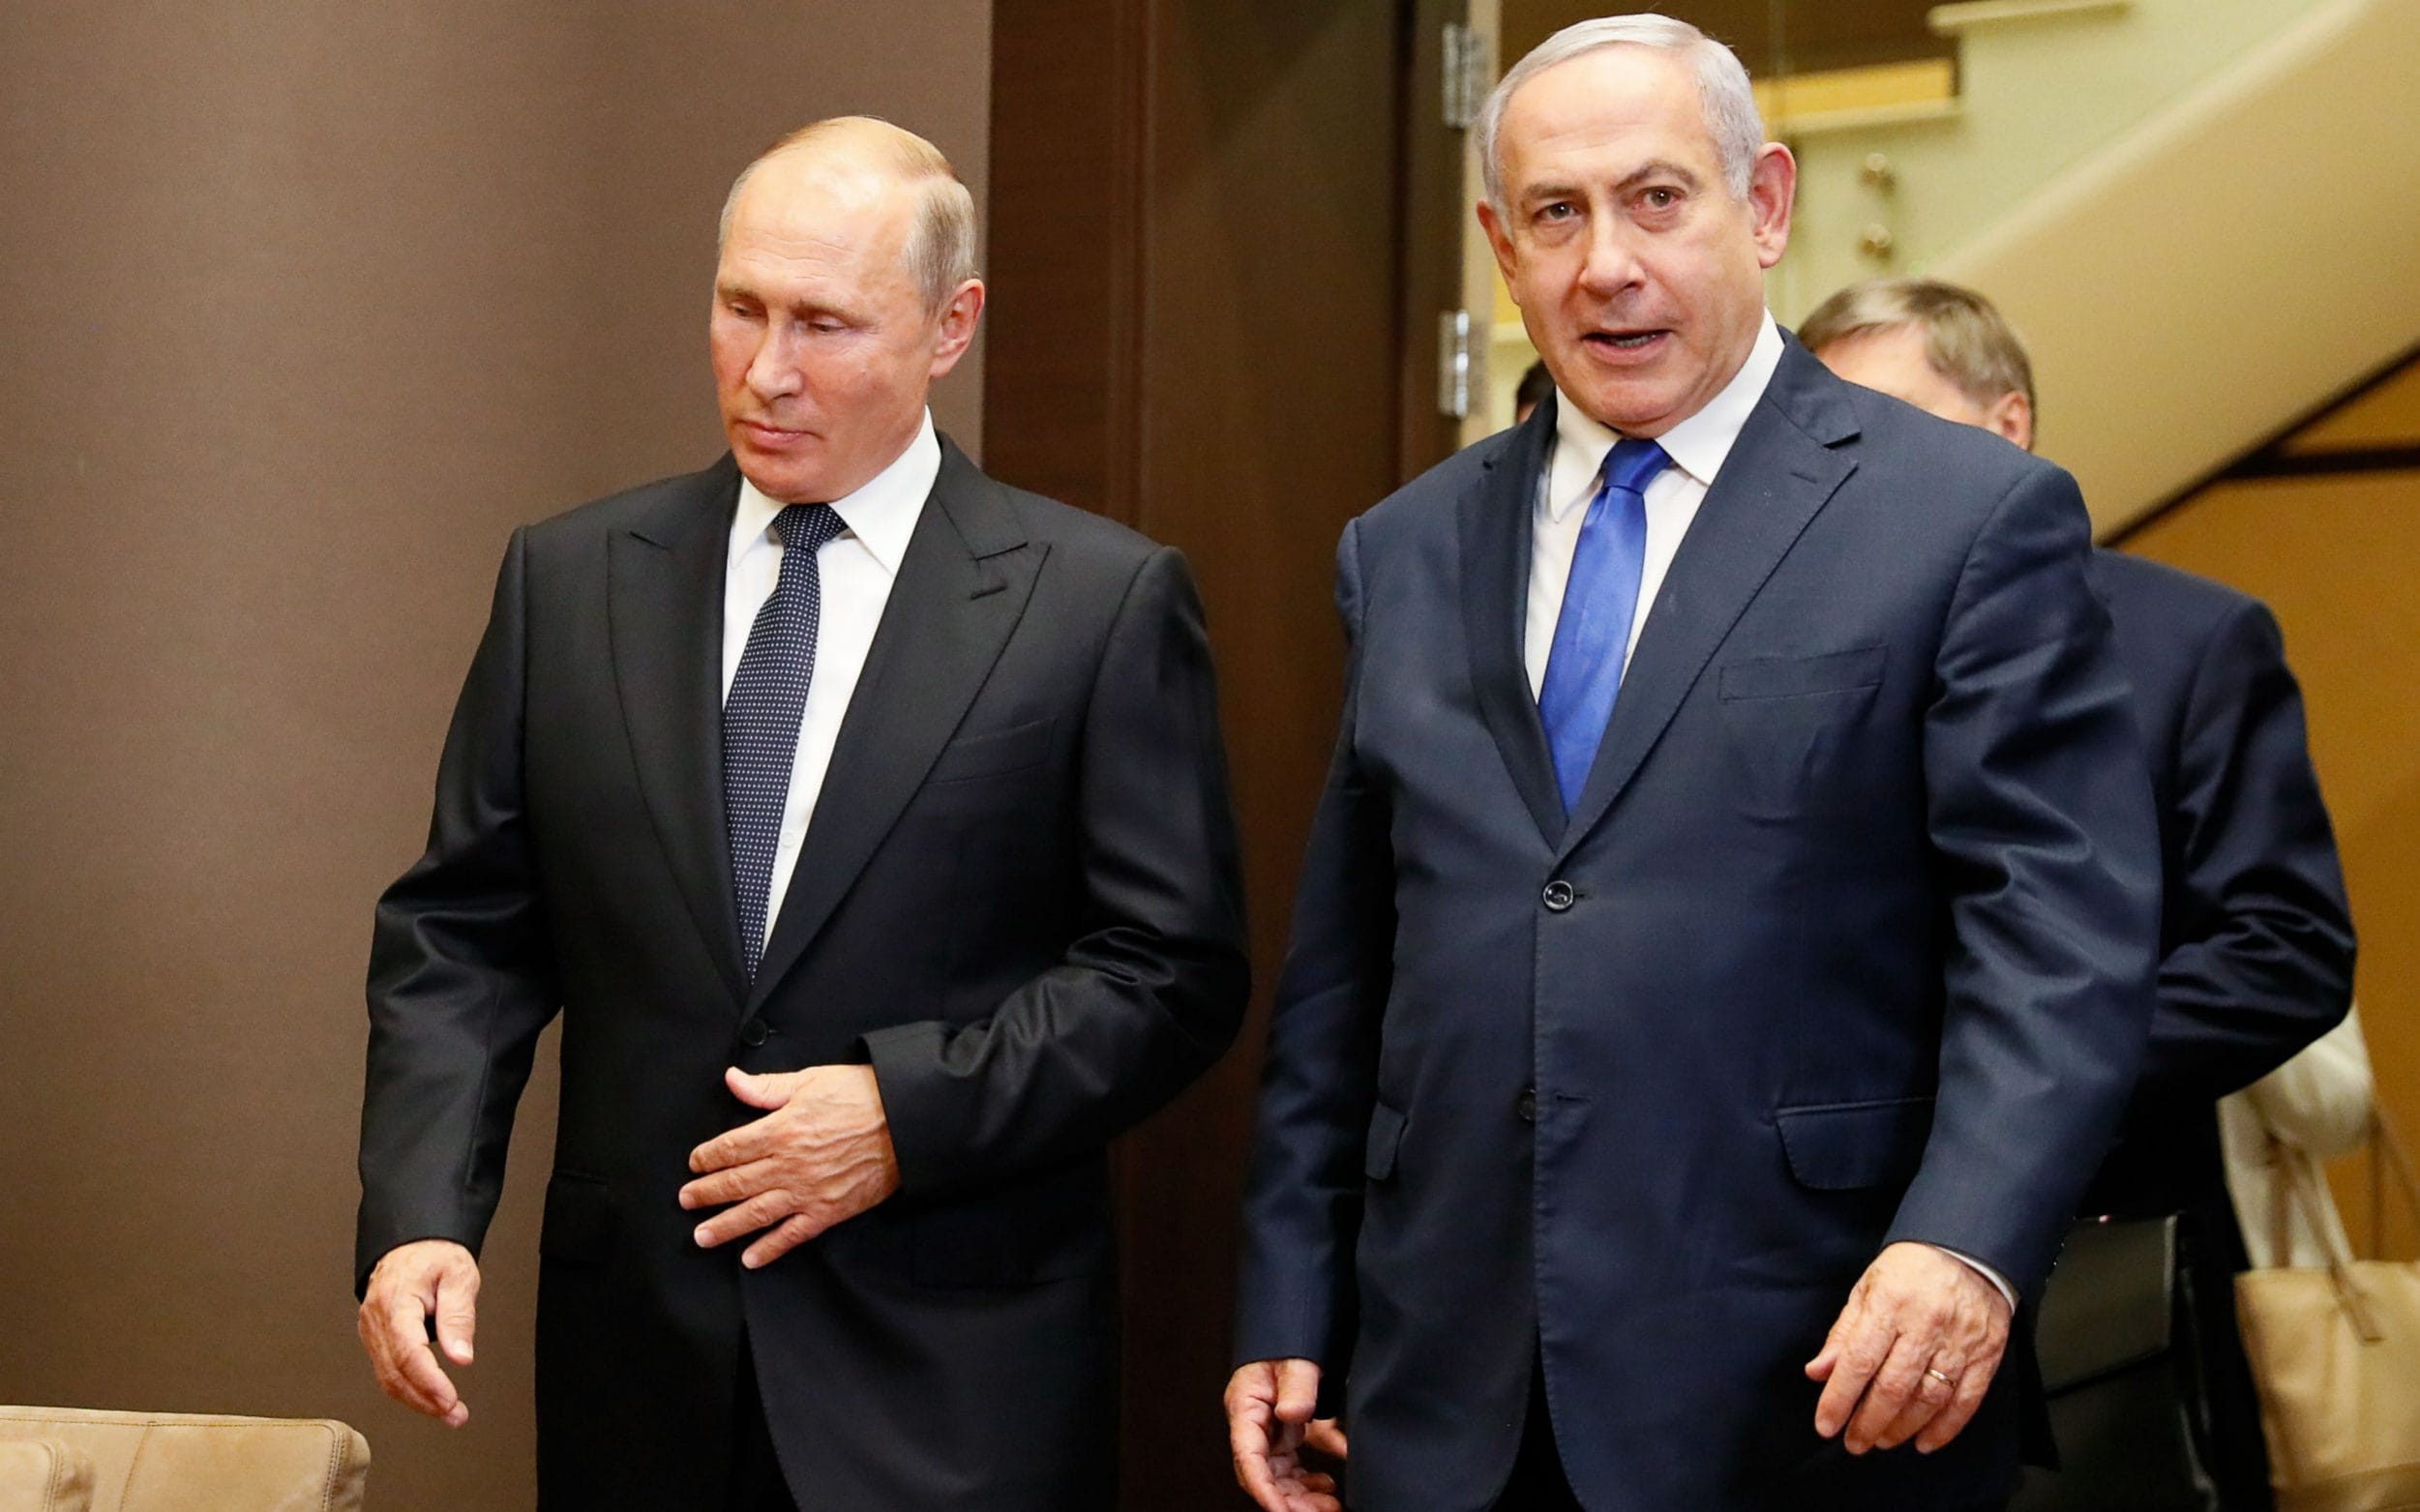 Netanyahu meets Putin as he makes desperate bid for Russian speaking voters ahead of knife-edge election